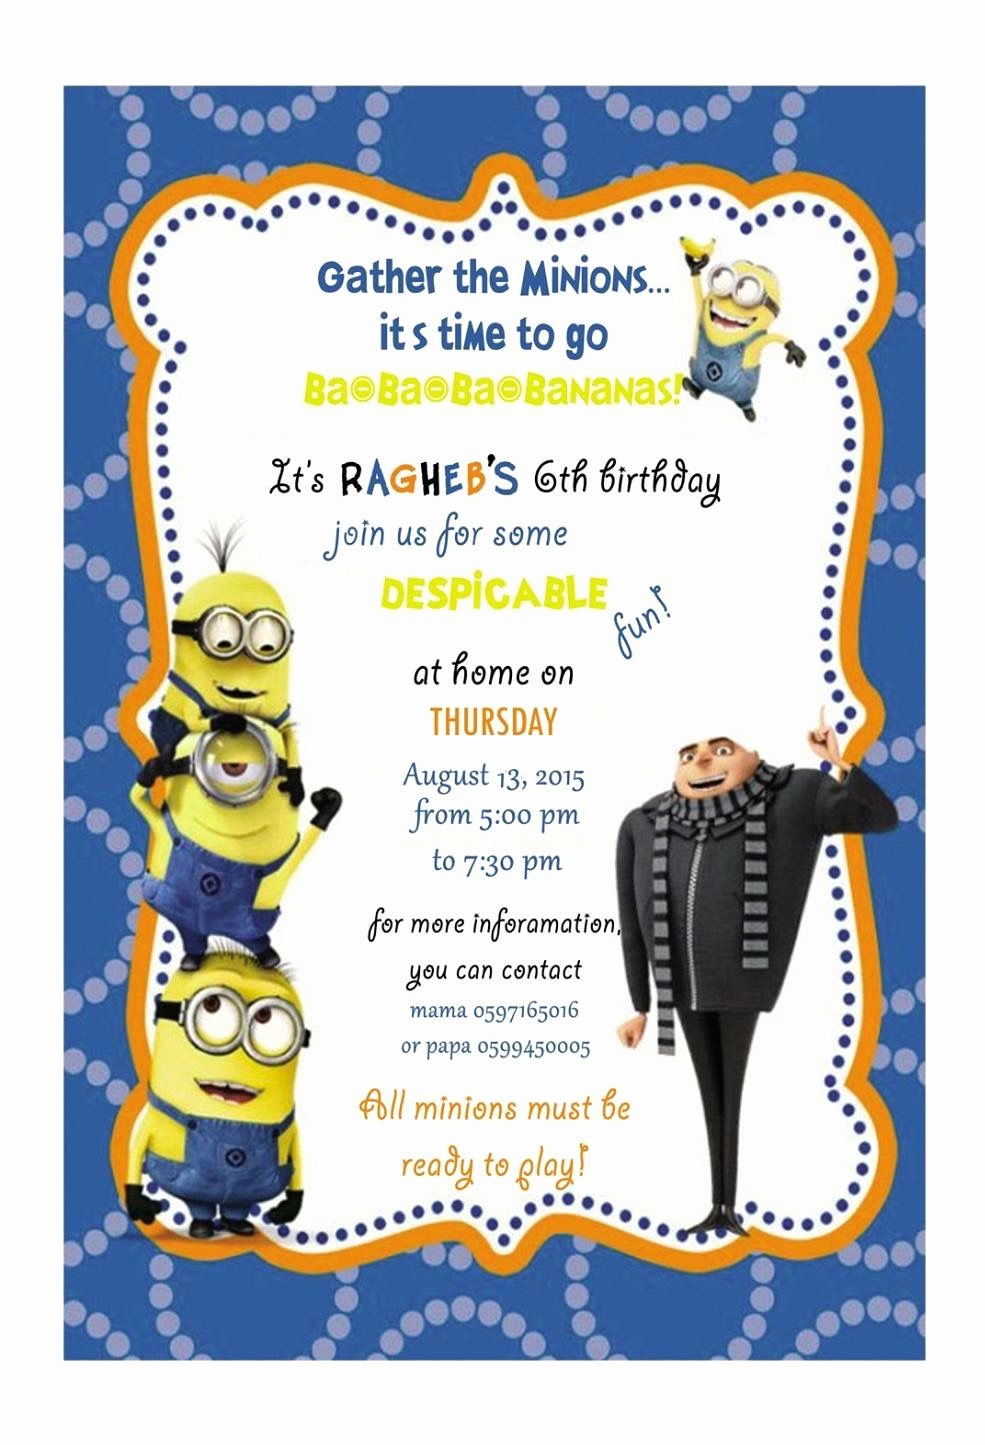 Minion Birthday Invitation Wording Unique Despicable Me Birthday Party Invitation Card